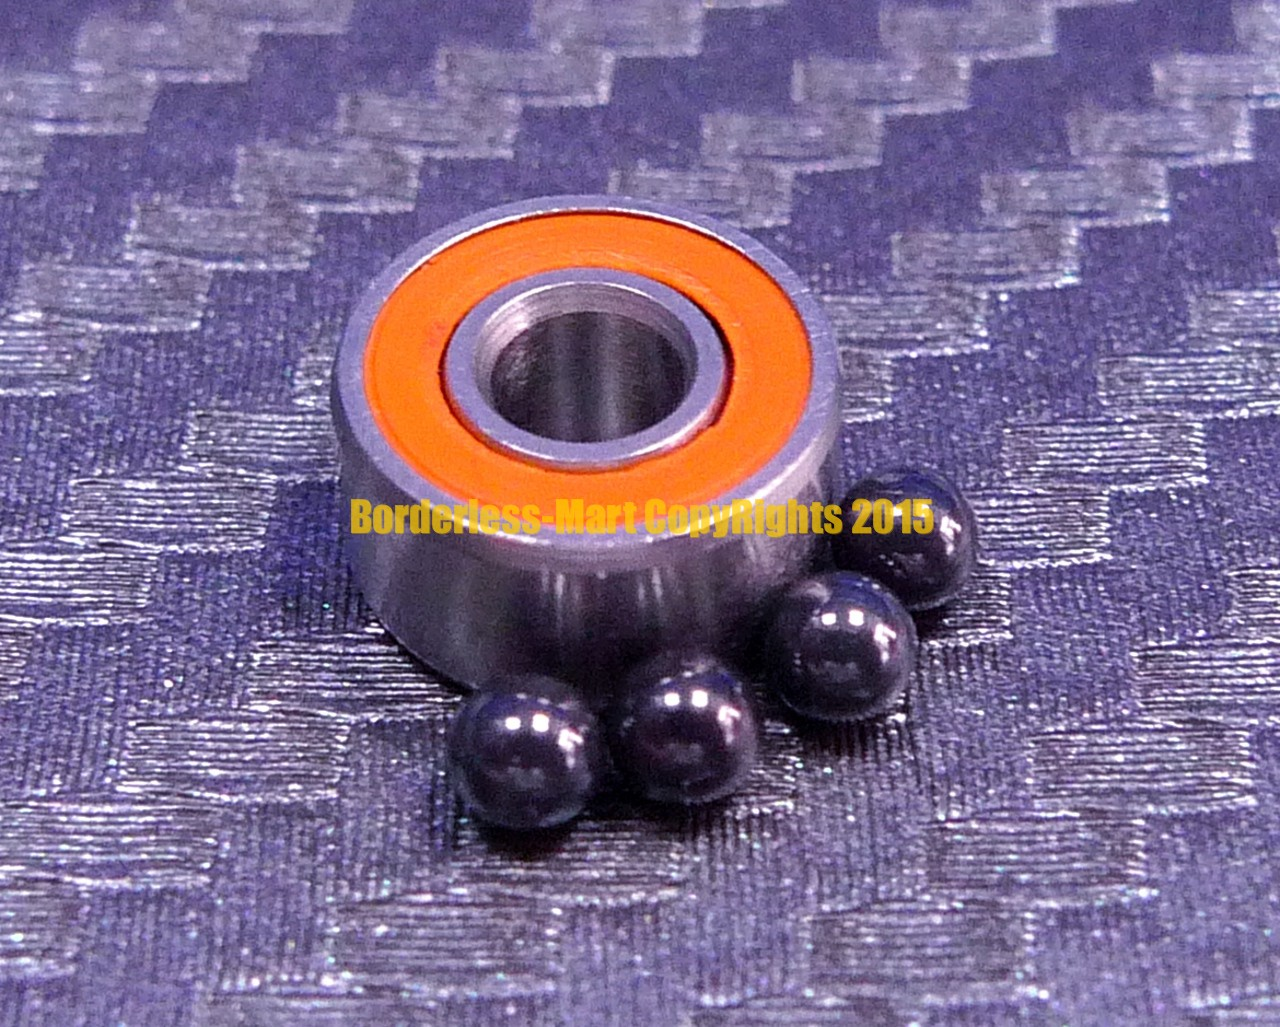 440c CERAMIC Stainless Steel Bearing S693-2RS ABEC-7 Orange 3x8x4 mm 10 PCS